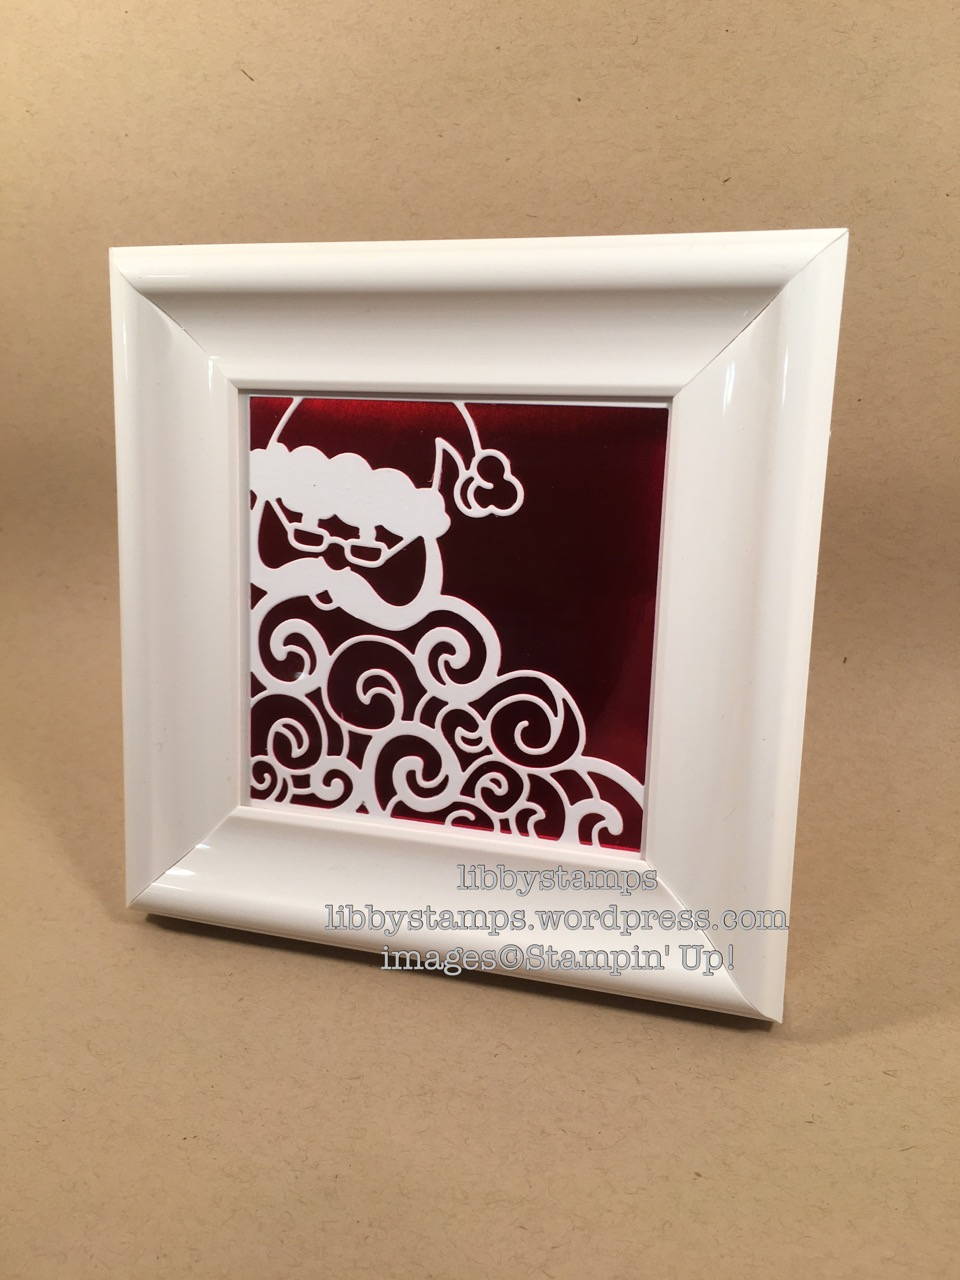 libbystamps, stampin up, Red Foil, Detailed Santa Thinlits, Christmas frame